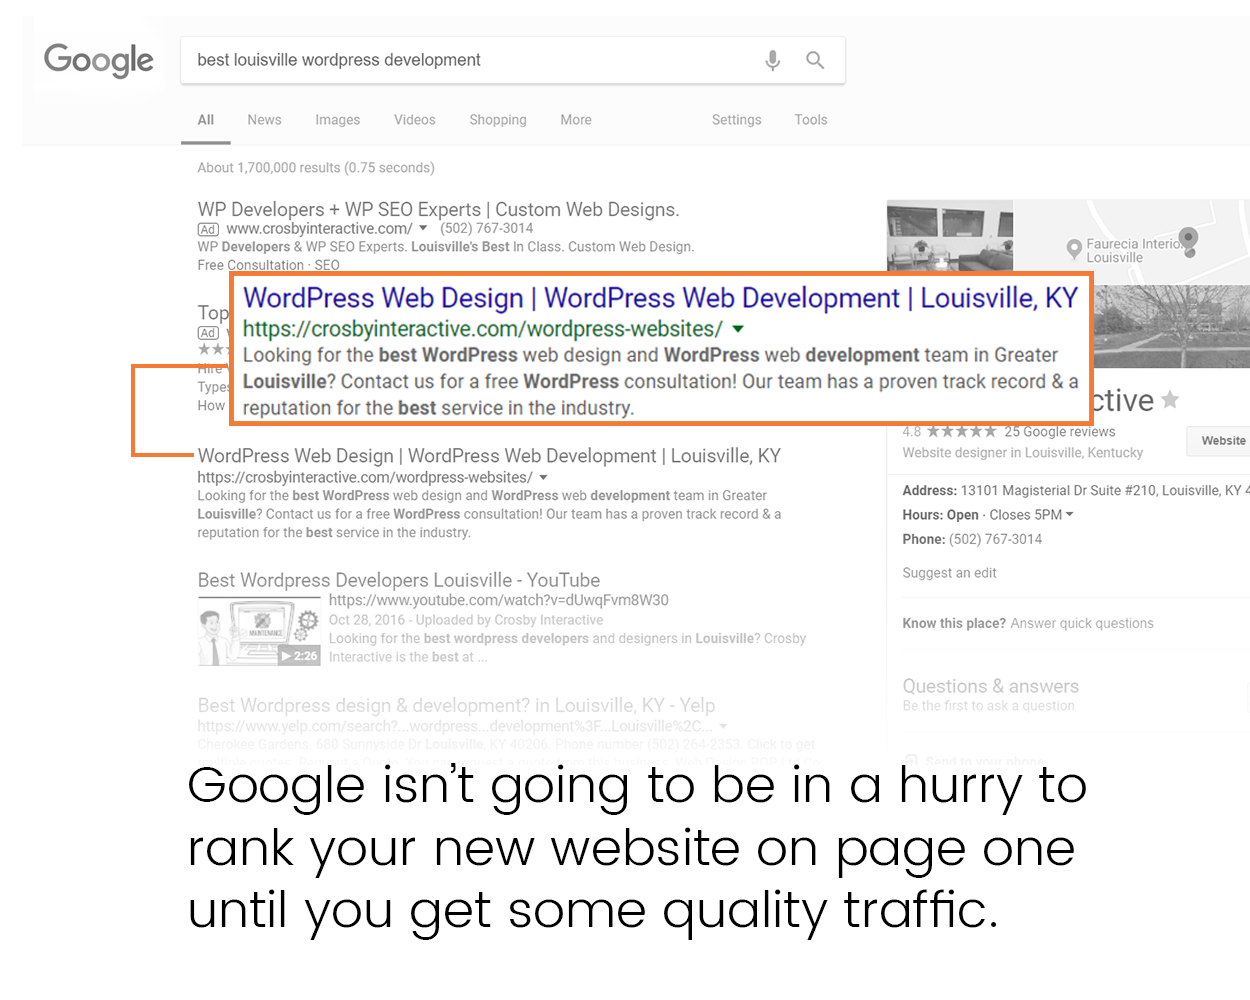 Google isn't going to be in a hurry to rank your new website on page one until you get some quality traffic.